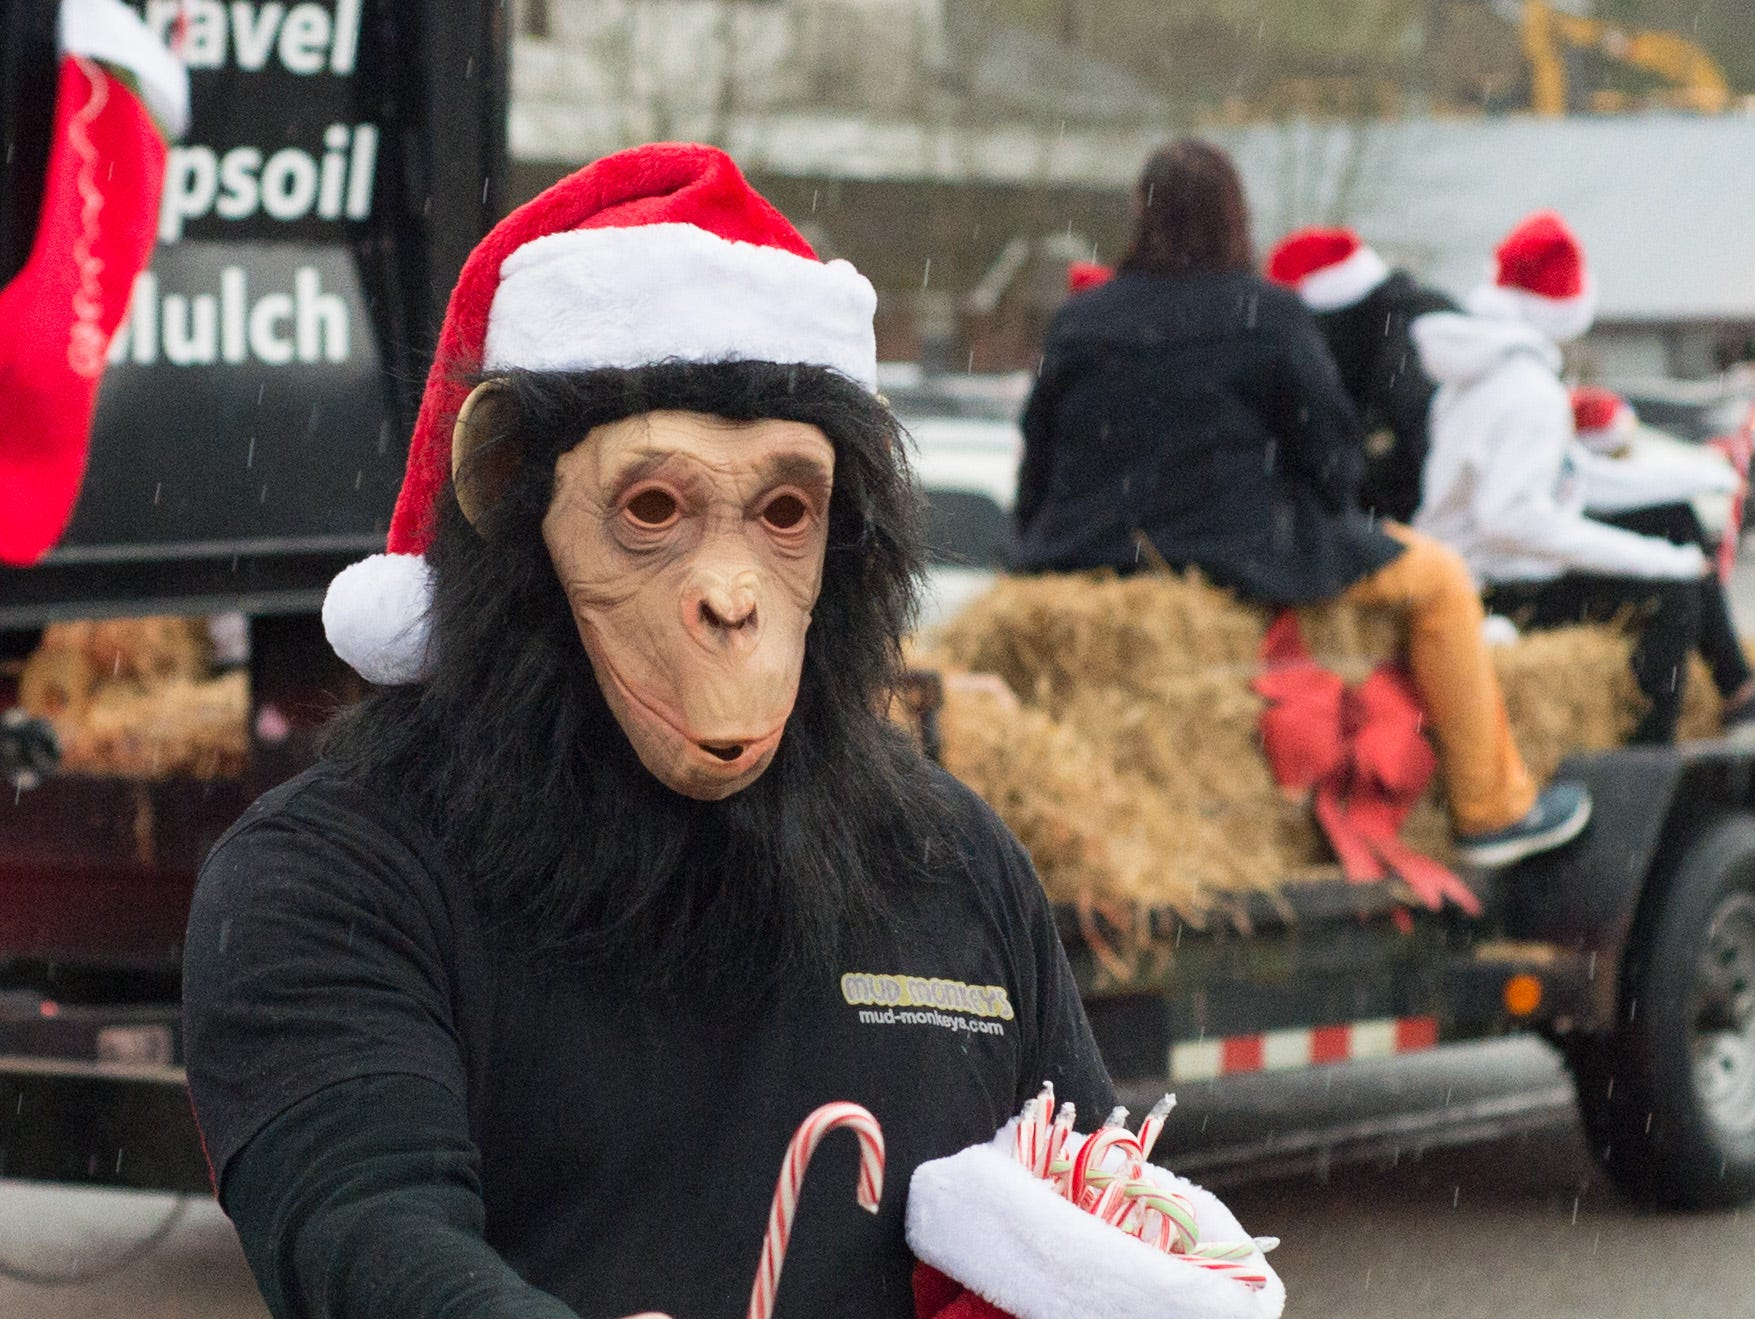 Floats, music and fun entertain the crowd during the Goodlettsville Christmas Parade on Saturday, Dec. 1.